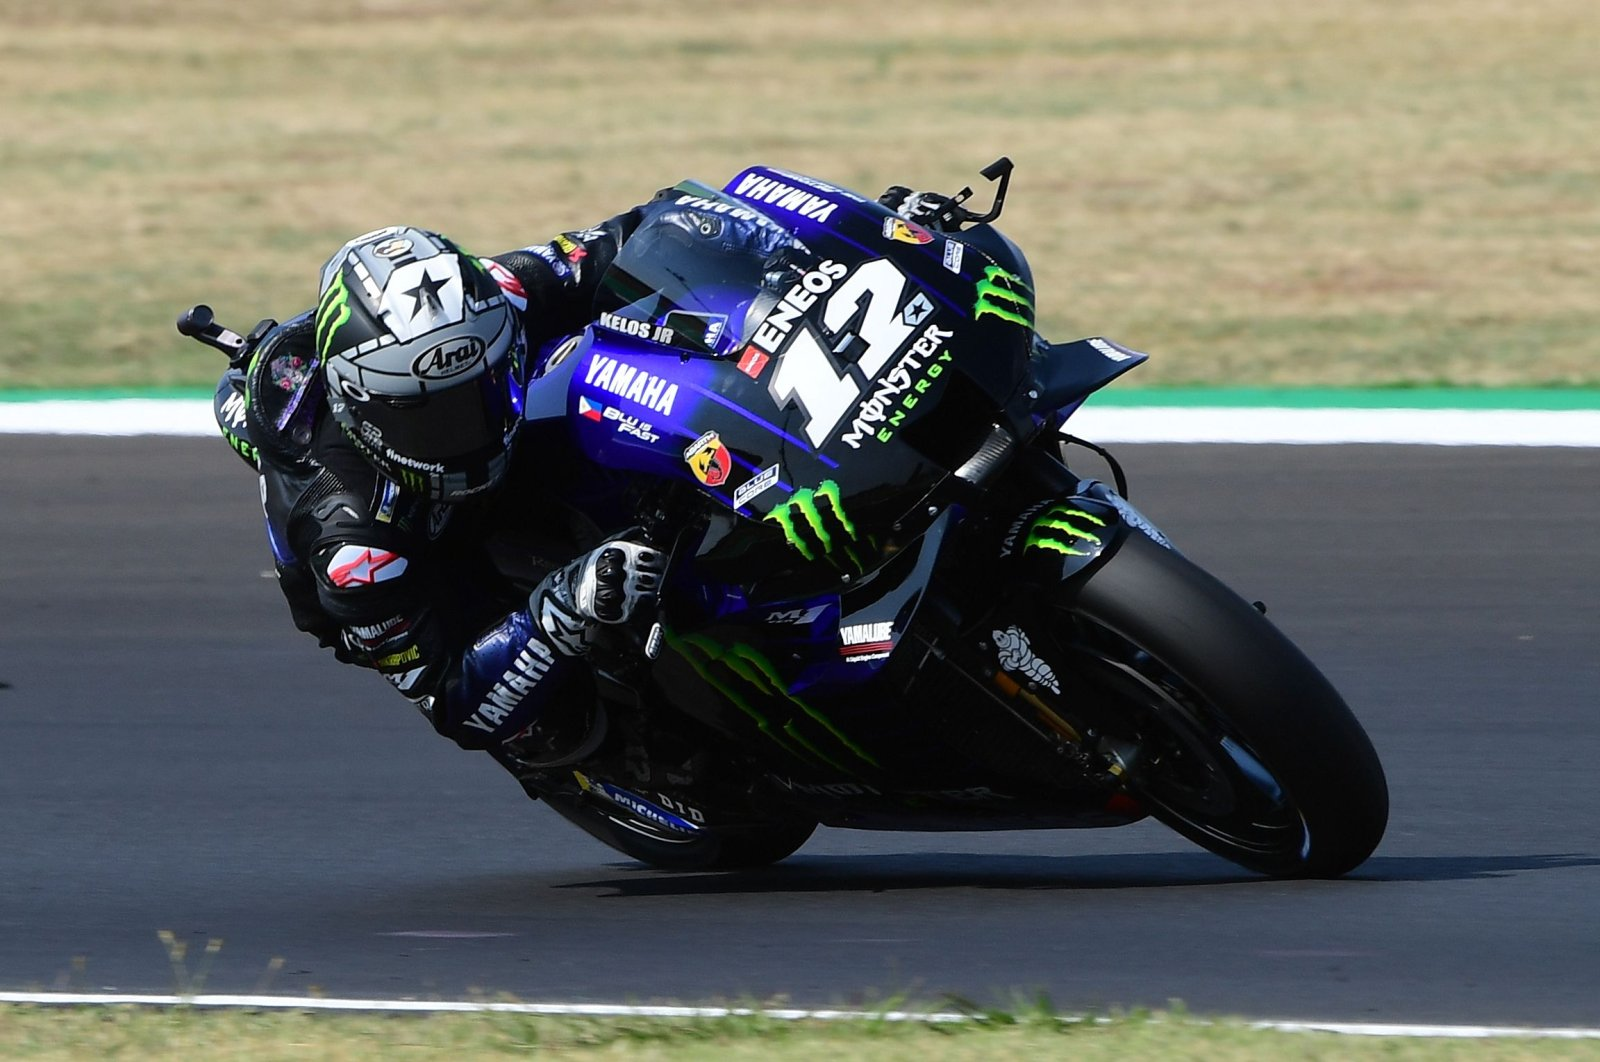 Yamaha's Maverick Vinales in action during Emilia Romagna MotoGP, in Misano, Italy, Sept. 20, 2020. (Reuters Photo)